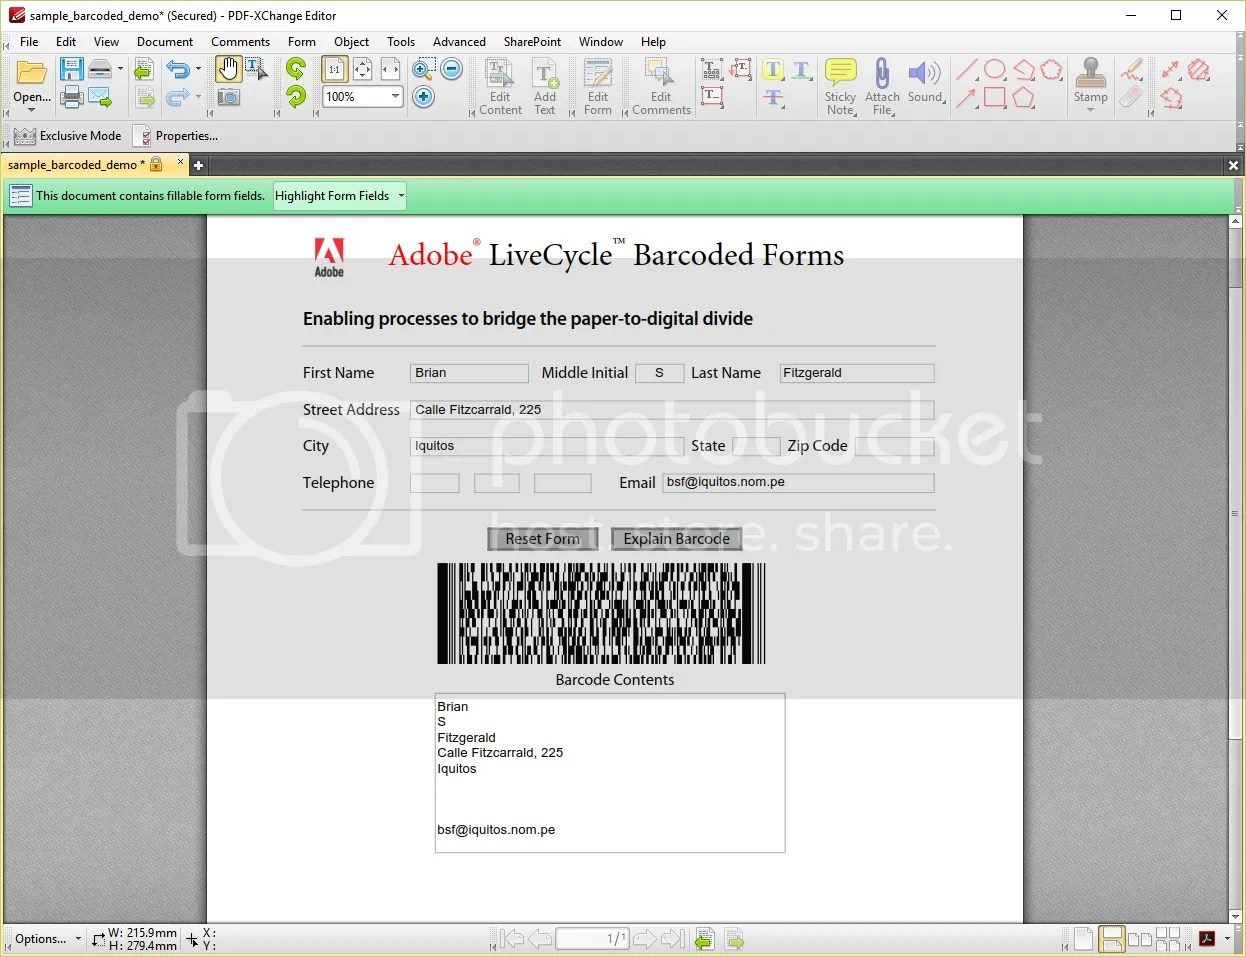 PDF-XChange Editor - sample_barcoded_demo.pdf